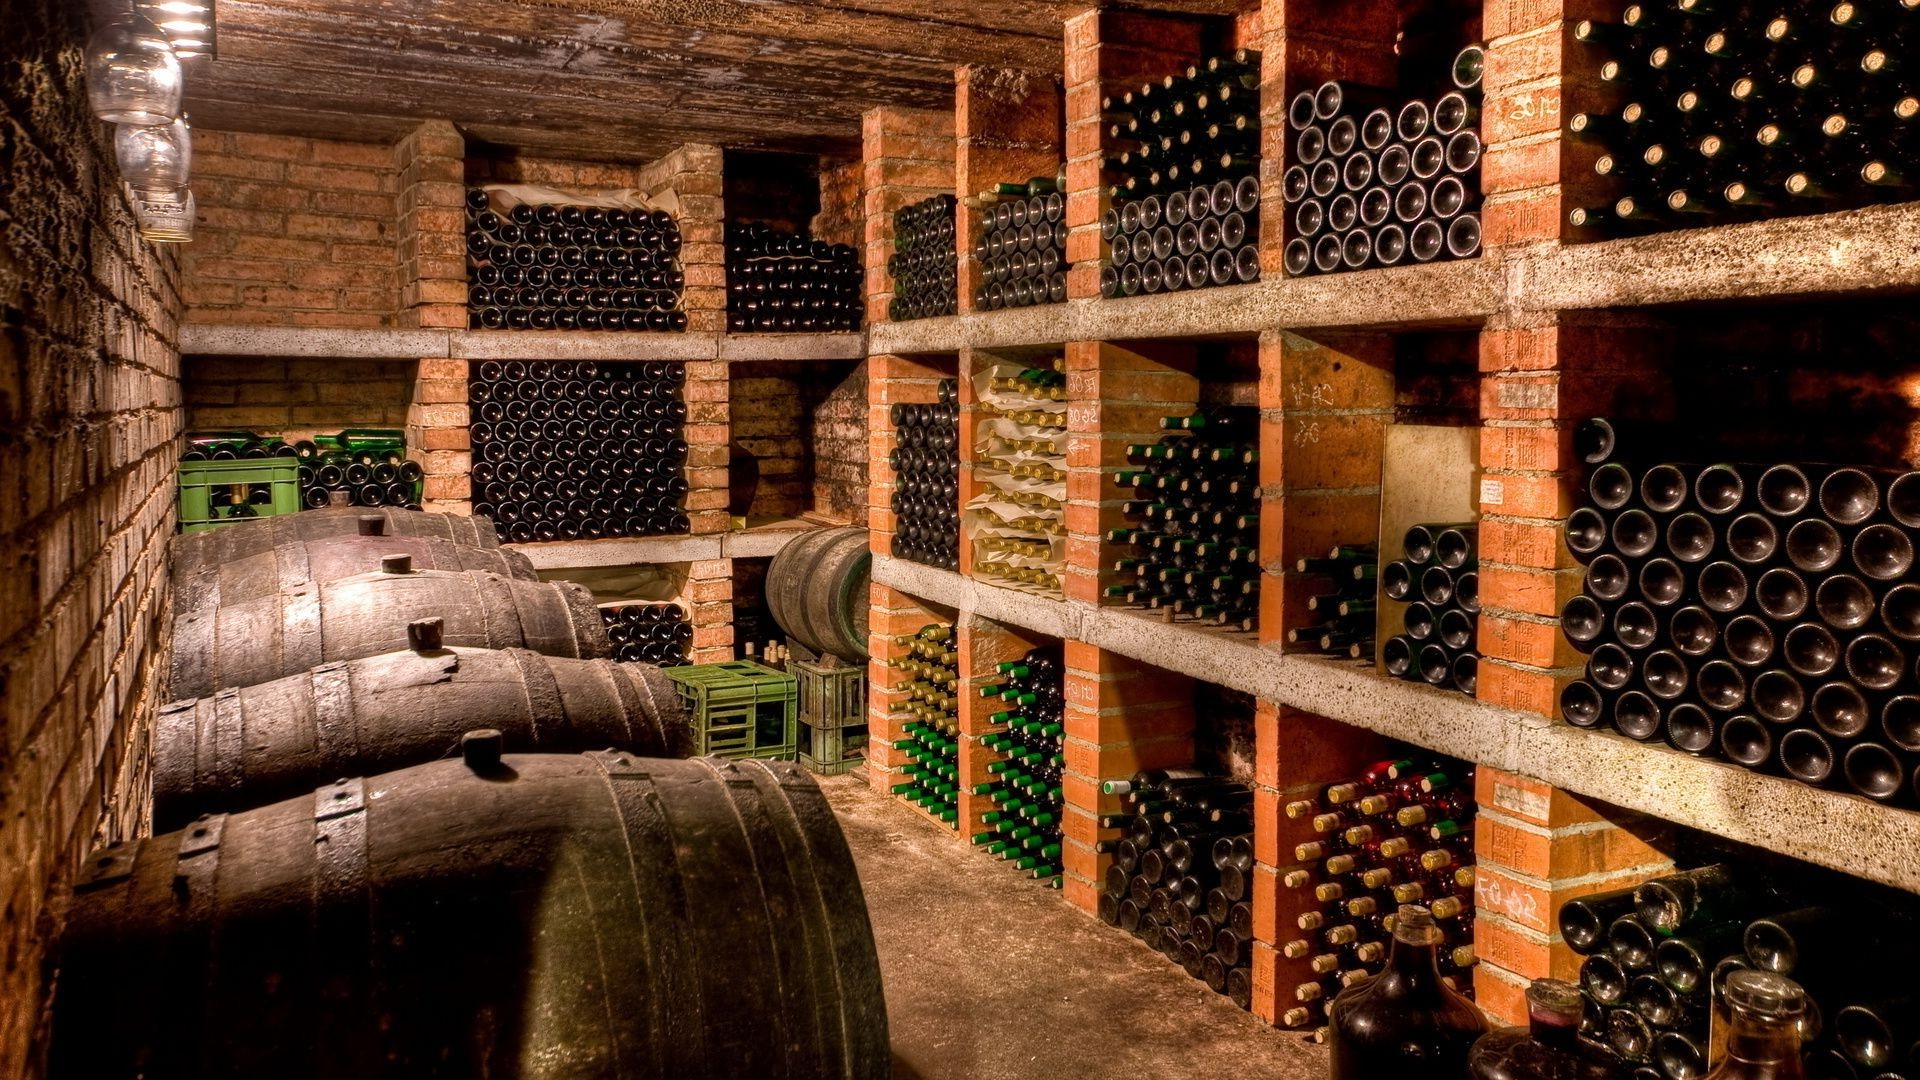 wine cellar android wallpapers for free. Black Bedroom Furniture Sets. Home Design Ideas